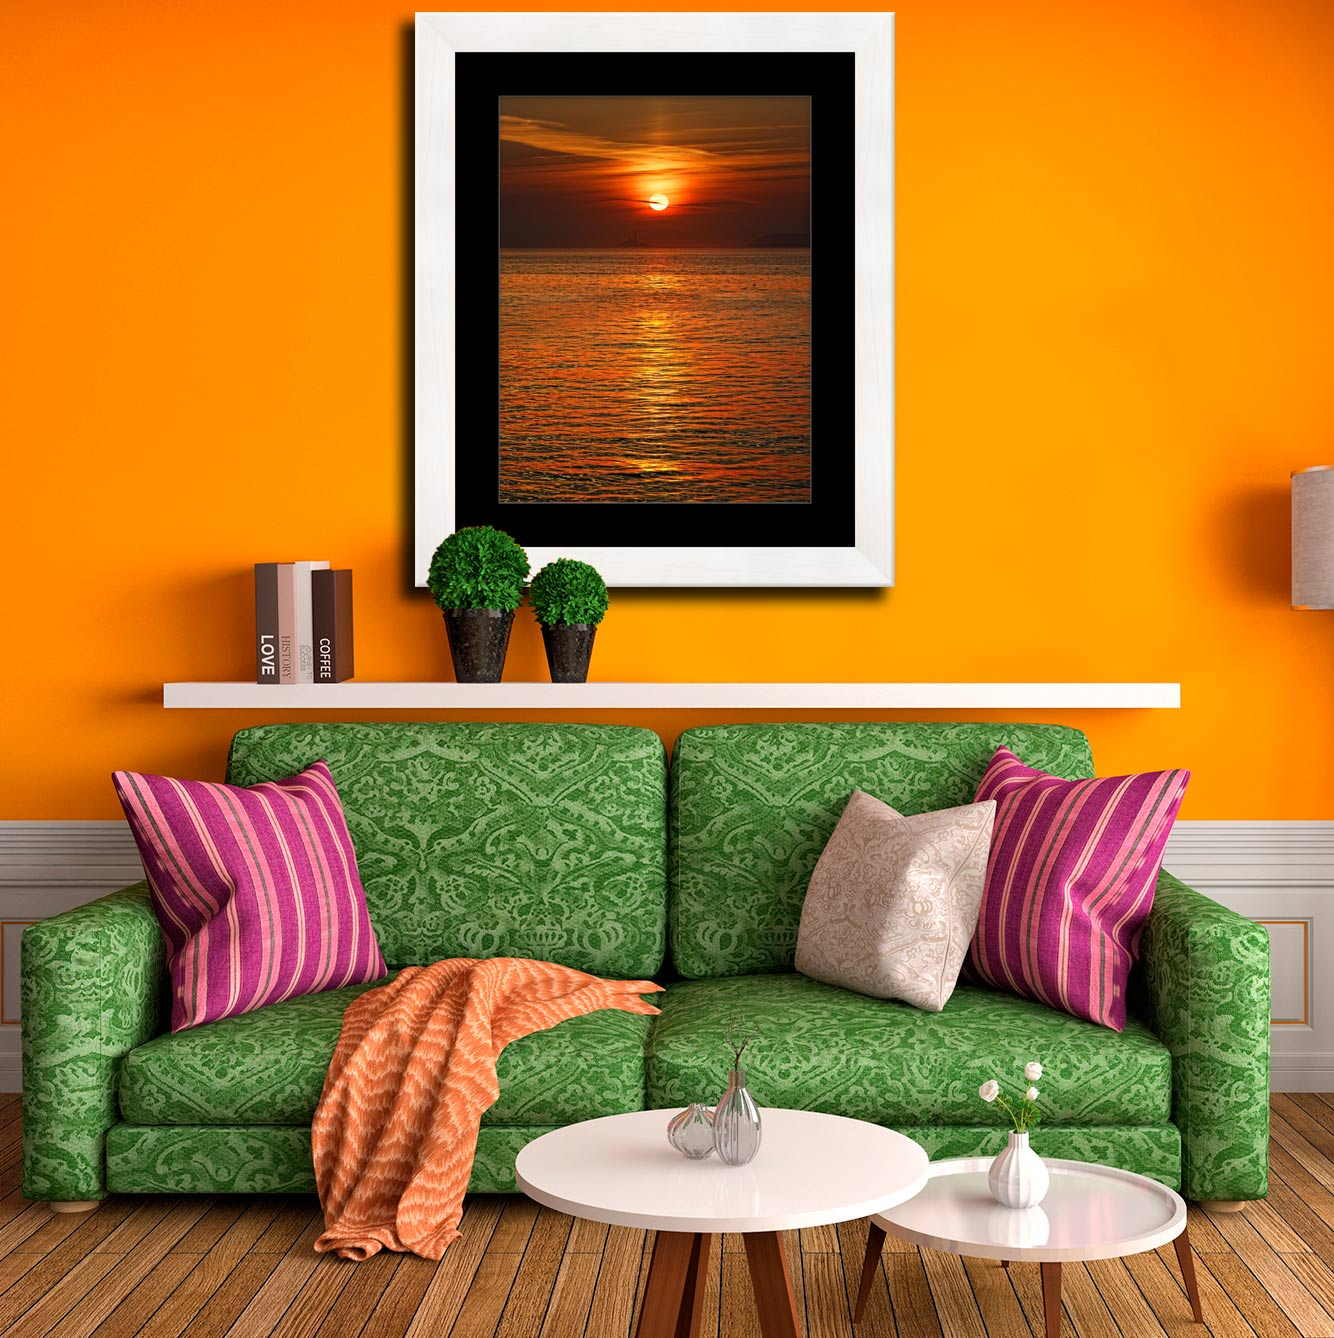 Sunrise Over Godrevy Lighthouse - Framed Print with Mount on Wall